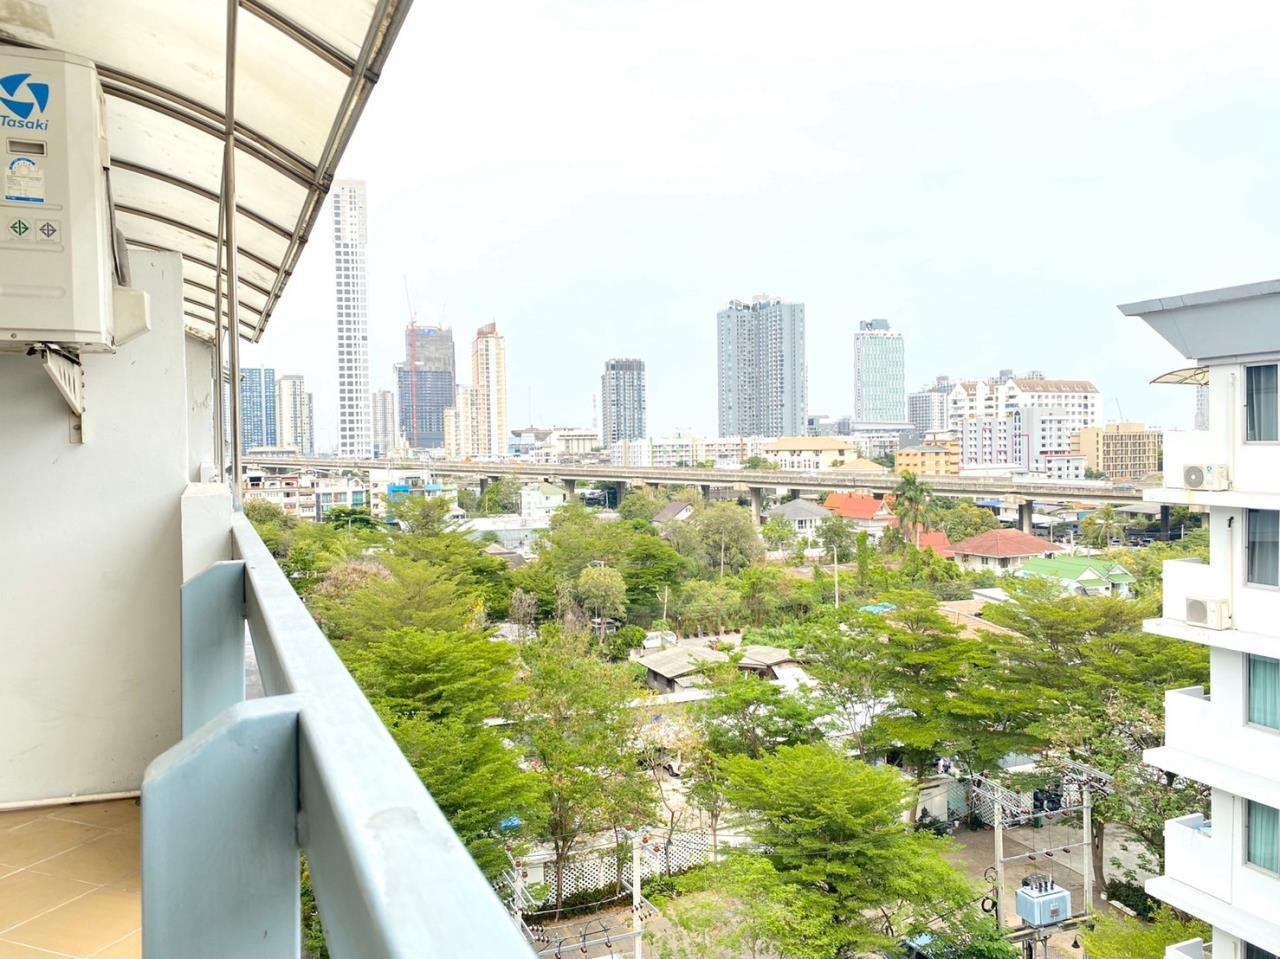 Bestbkkcondos Agency's Waterford 50 2 bedrooms 2 bathrooms 96.8 sqm. 8th Floor for sale 6.582mTHB Rental 28000THB 12